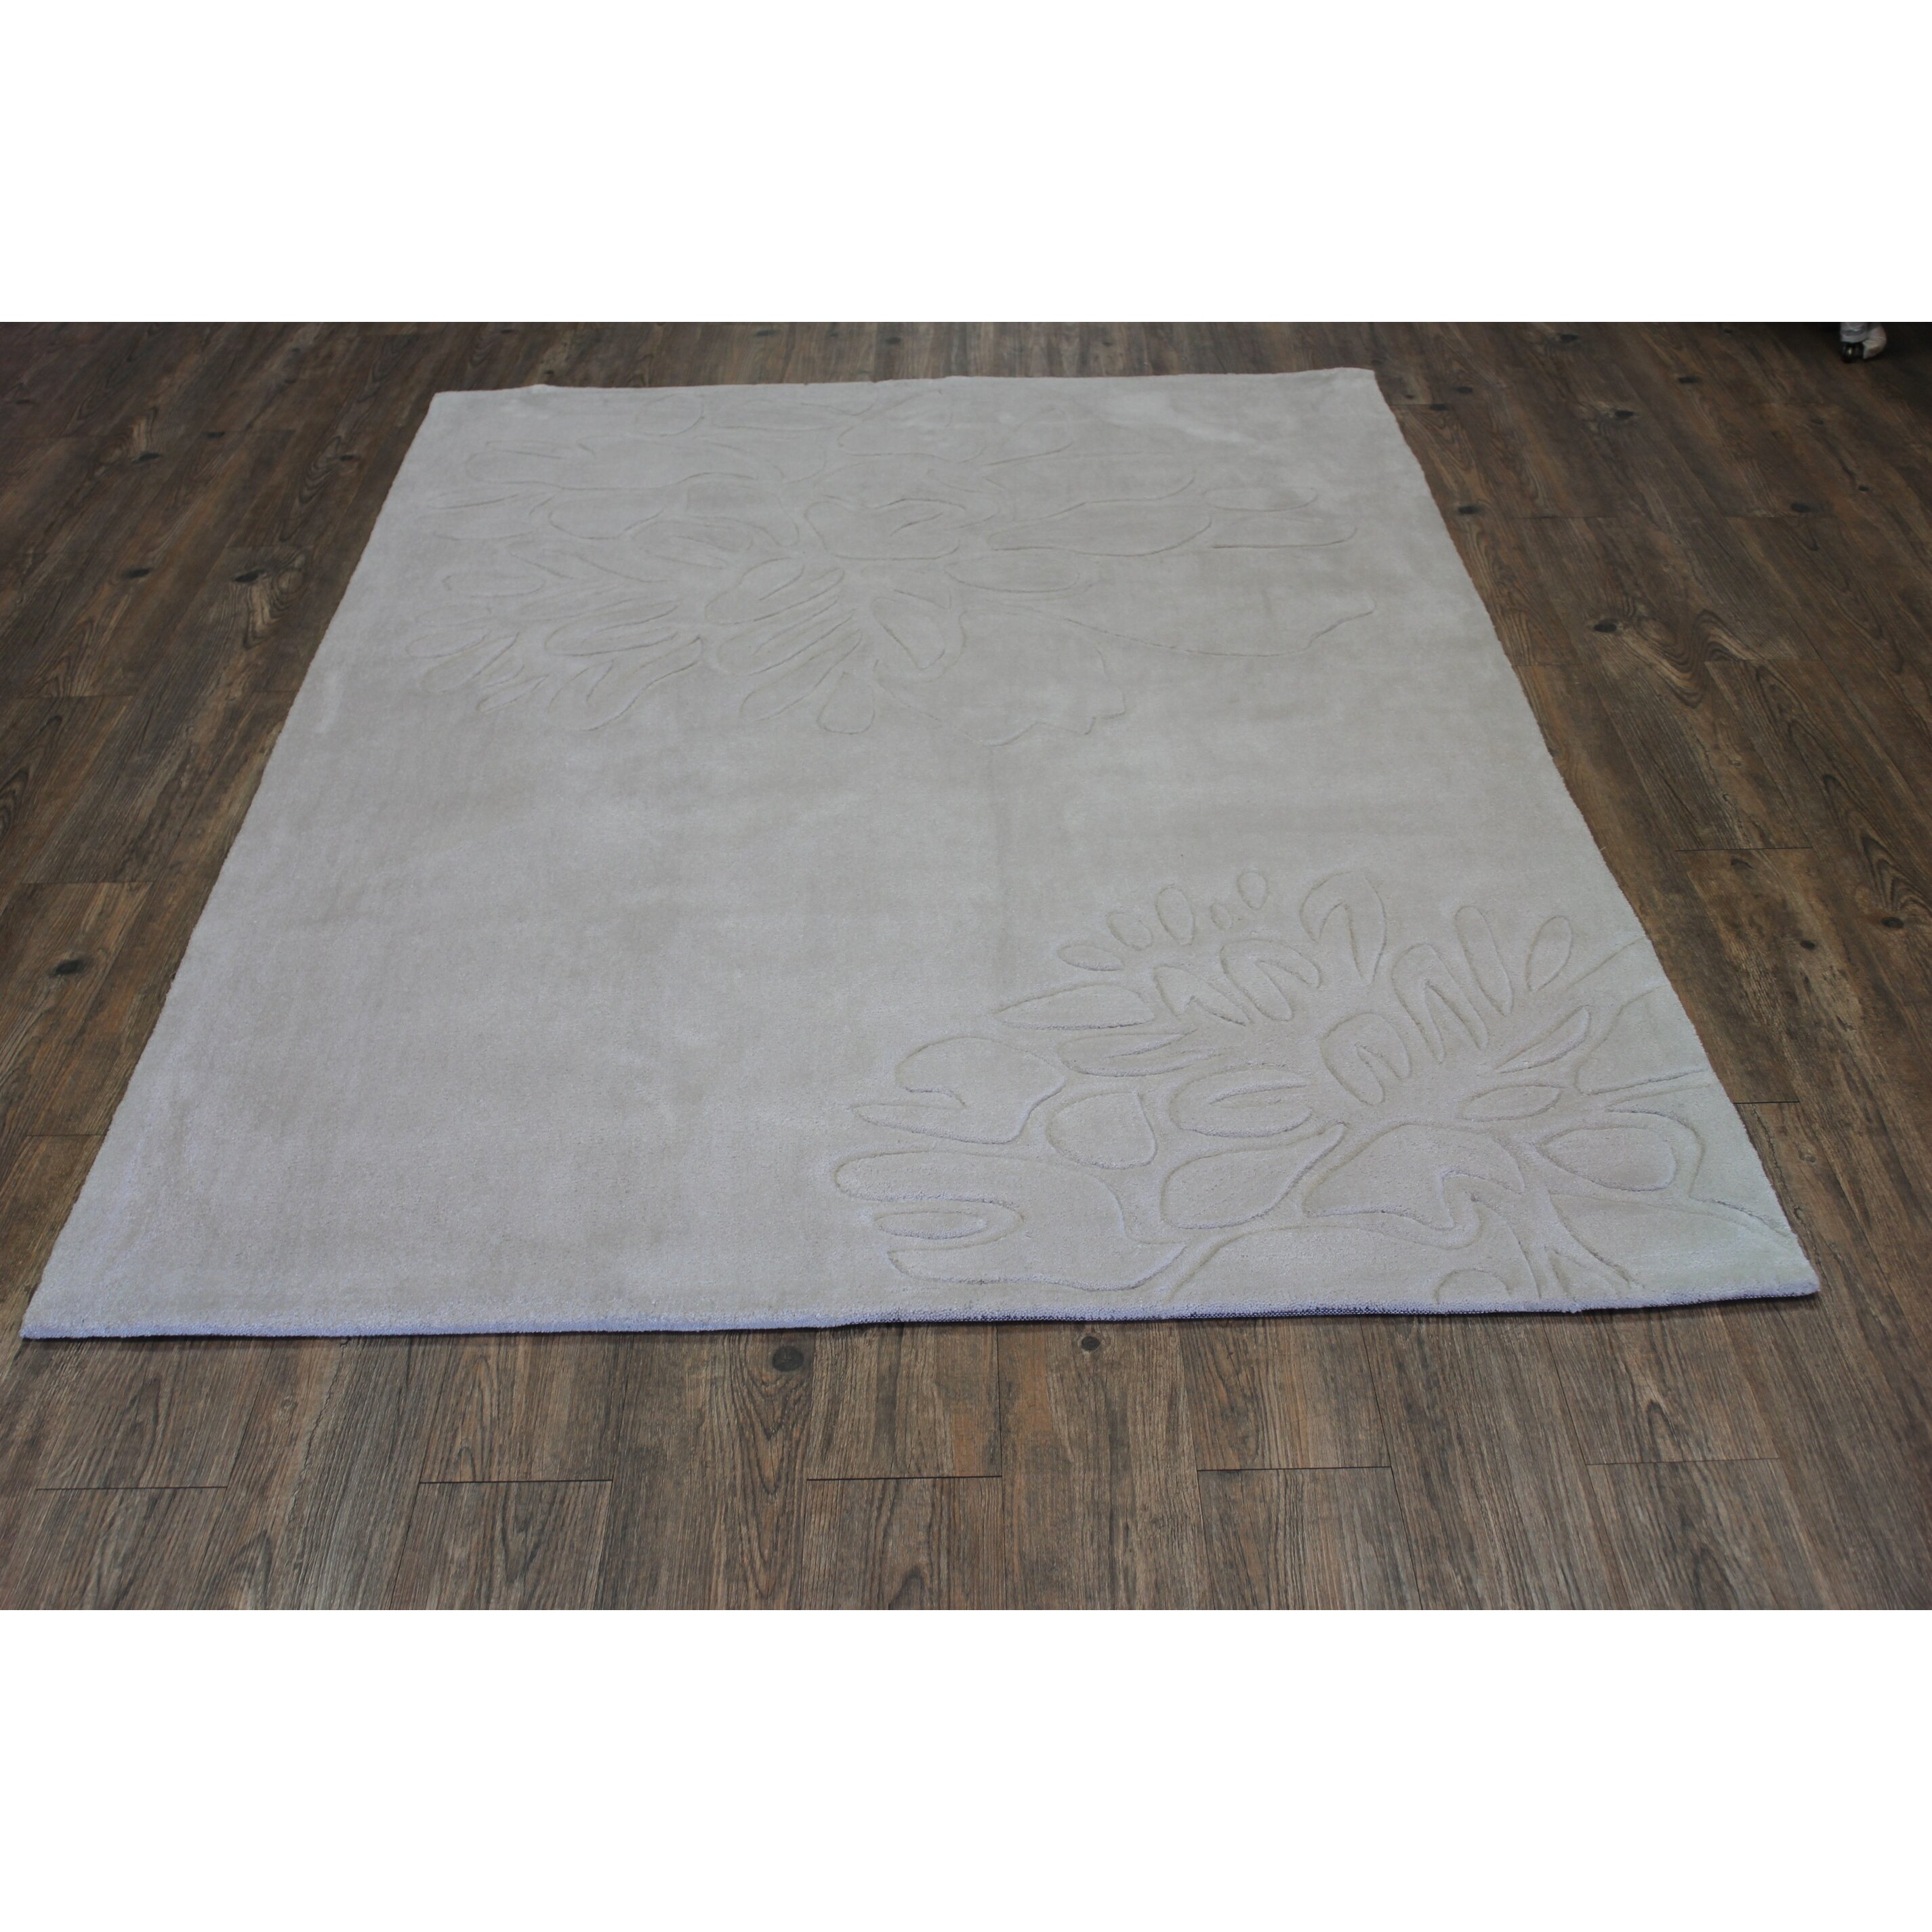 Throw Rugs Secure: Rug Factory Plus Transition Hand-Tufted Beige Area Rug